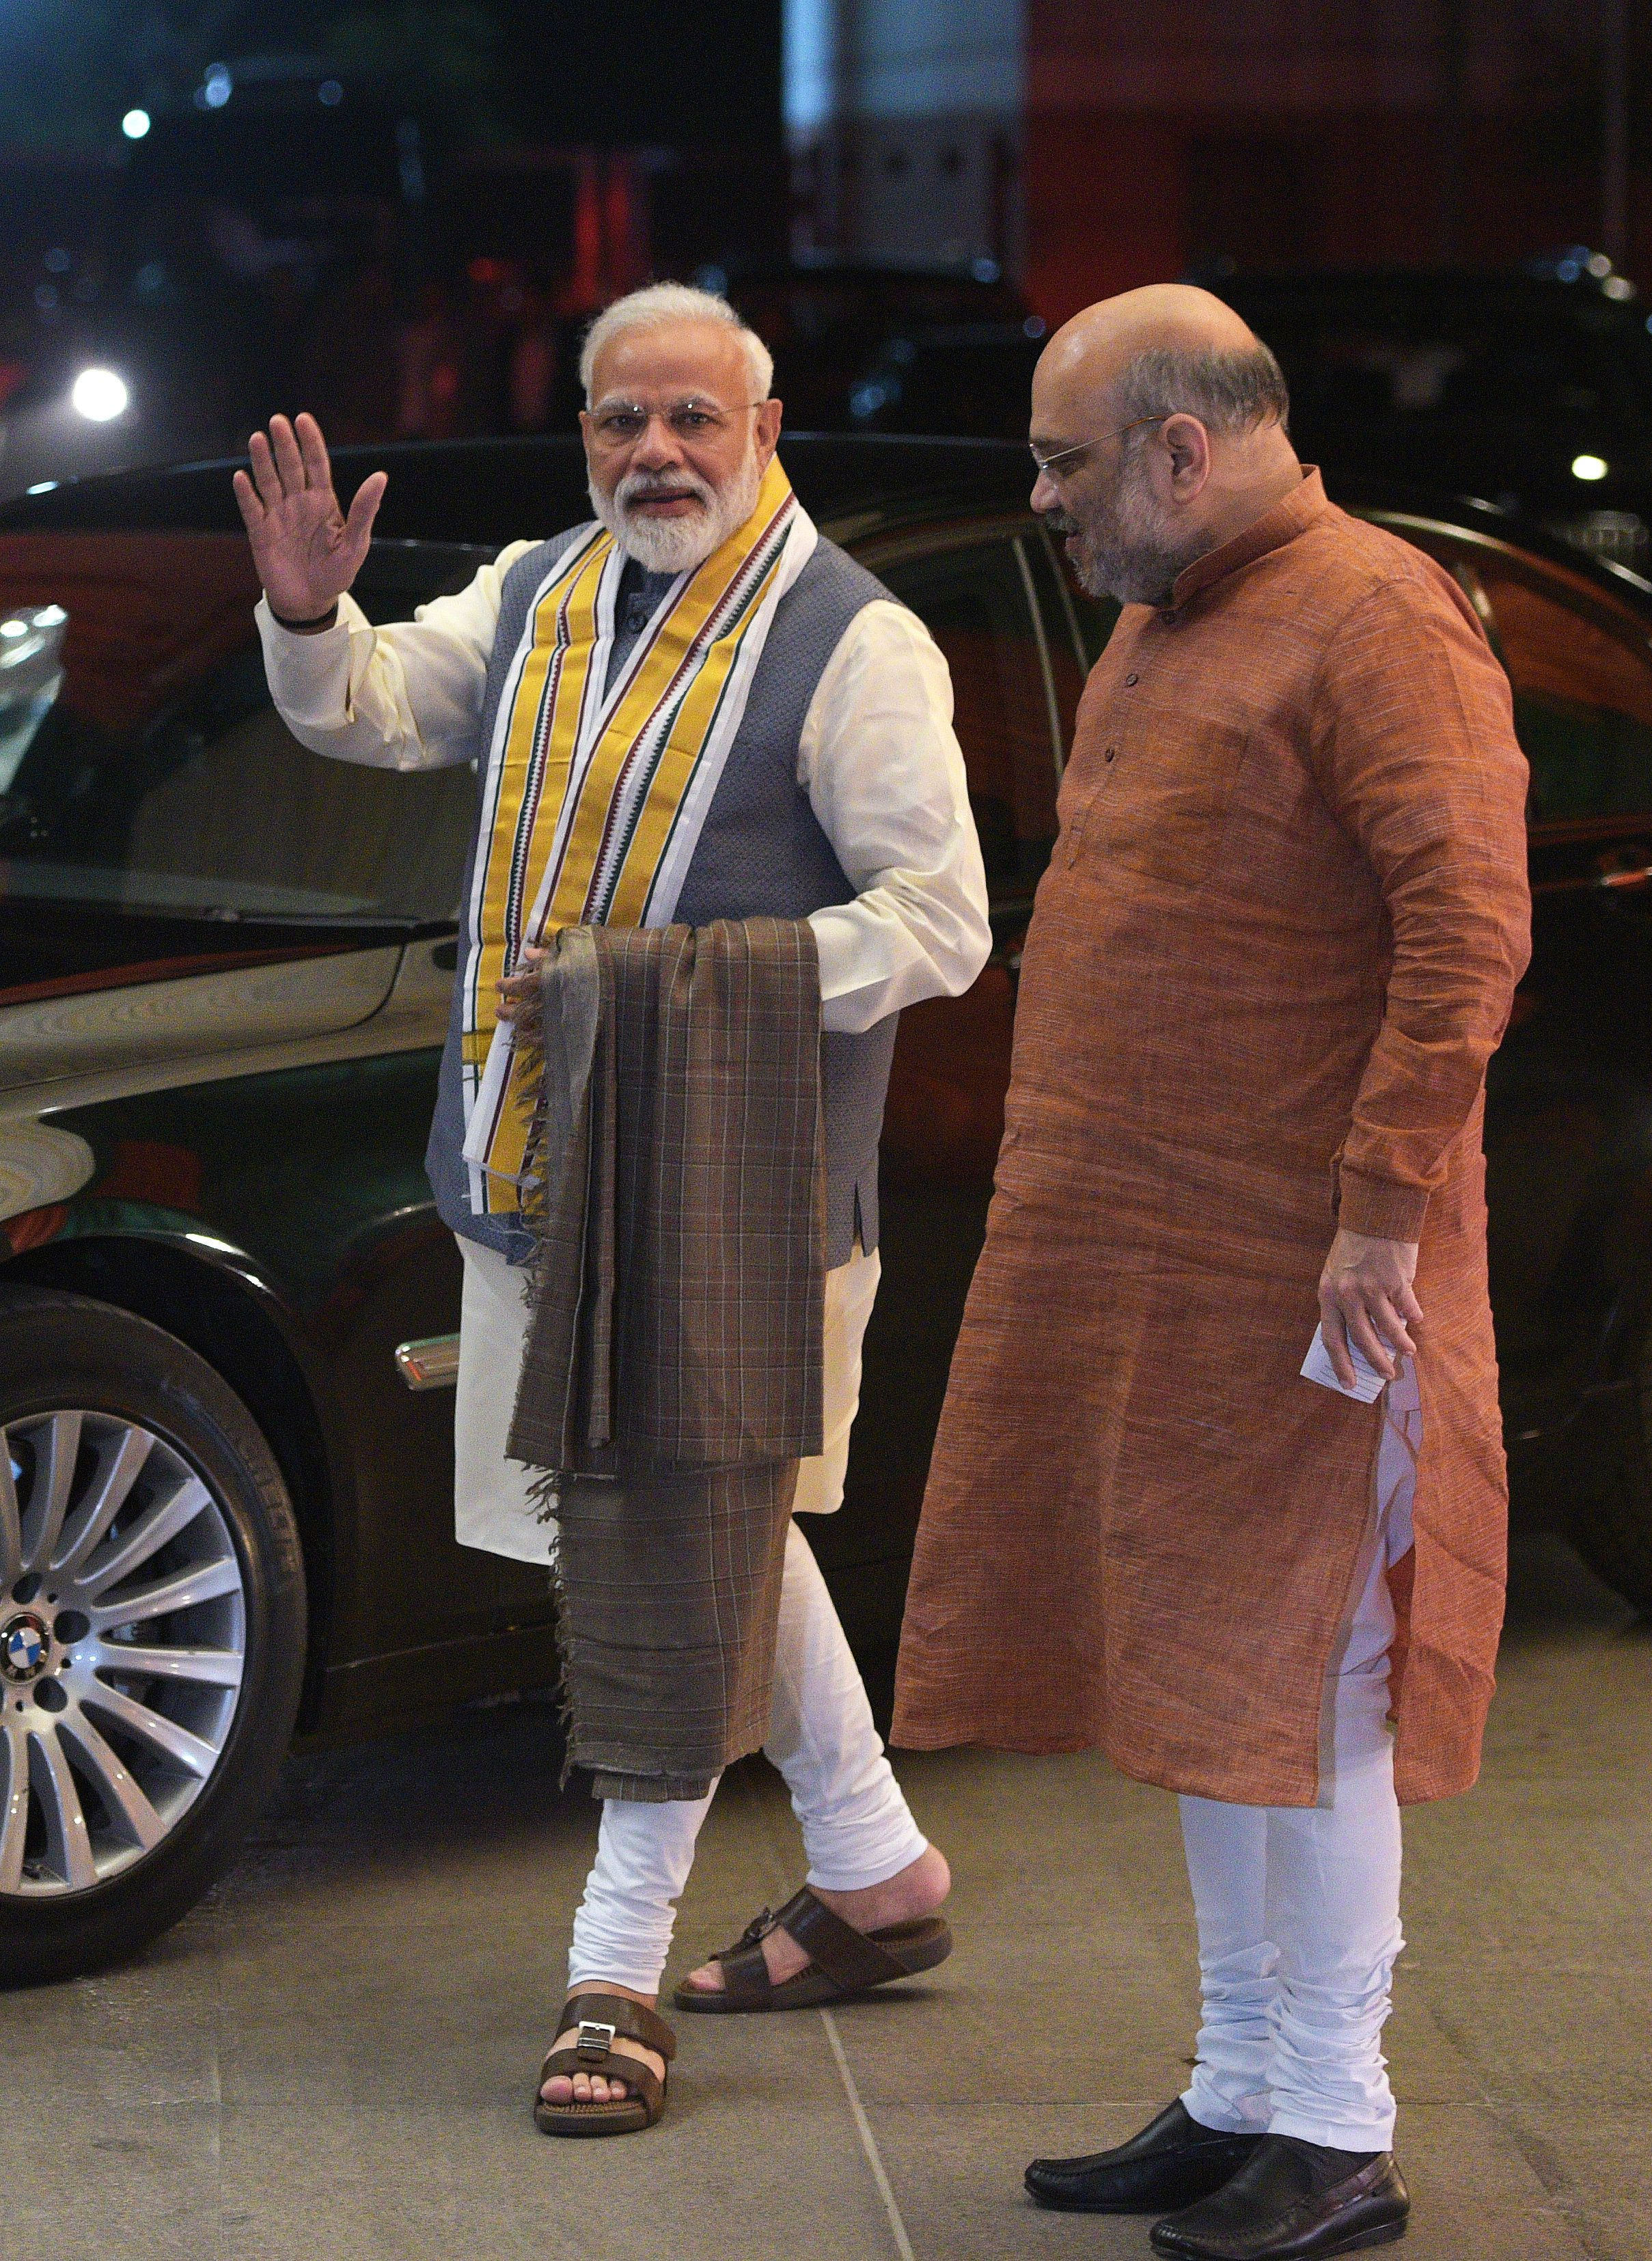 Elections 2019: Modi From Varanasi, Amit Shah From Gandhinagar In BJP's 1st List Of 184